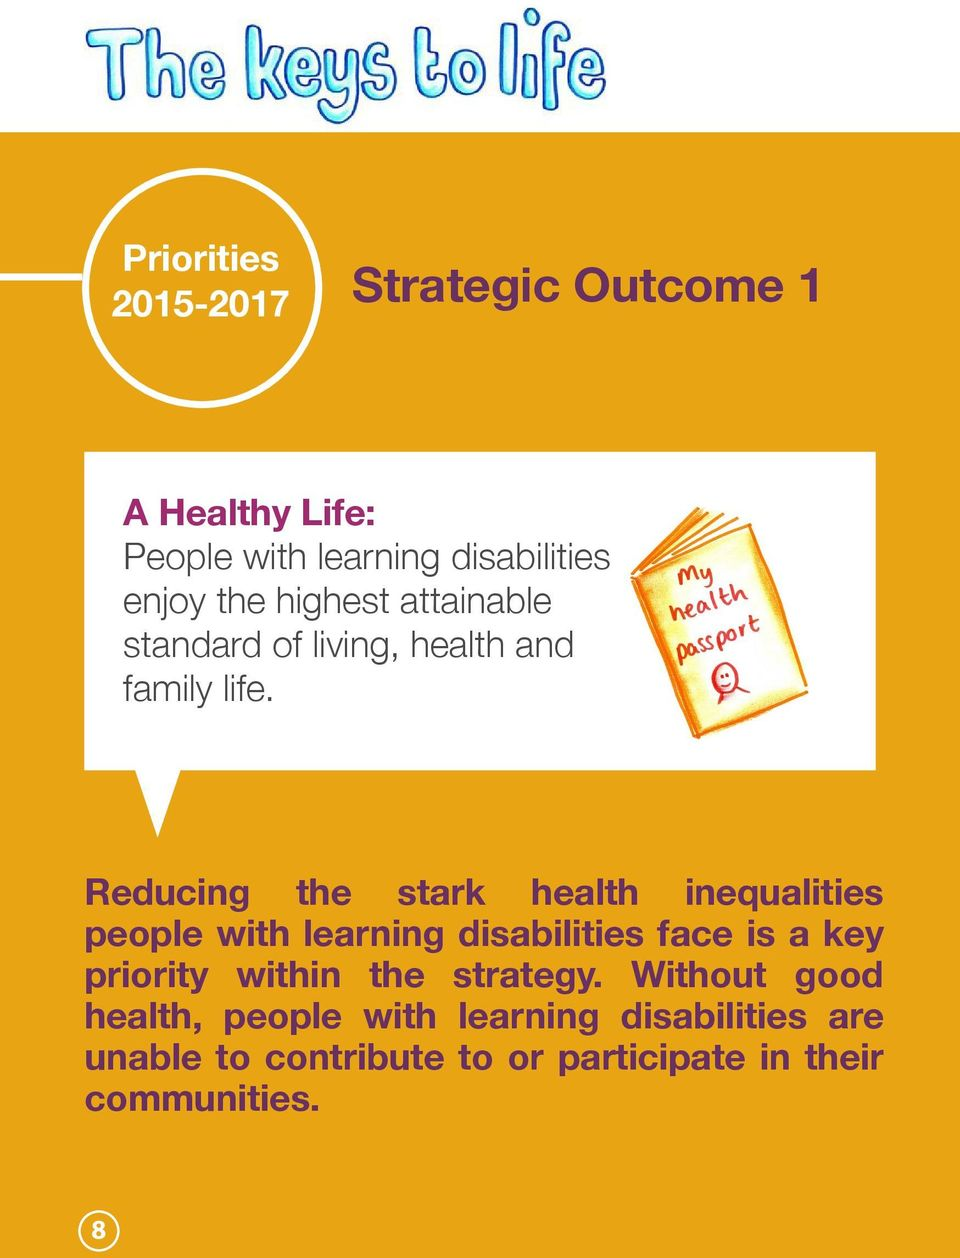 Reducing the stark health inequalities people with learning disabilities face is a key priority